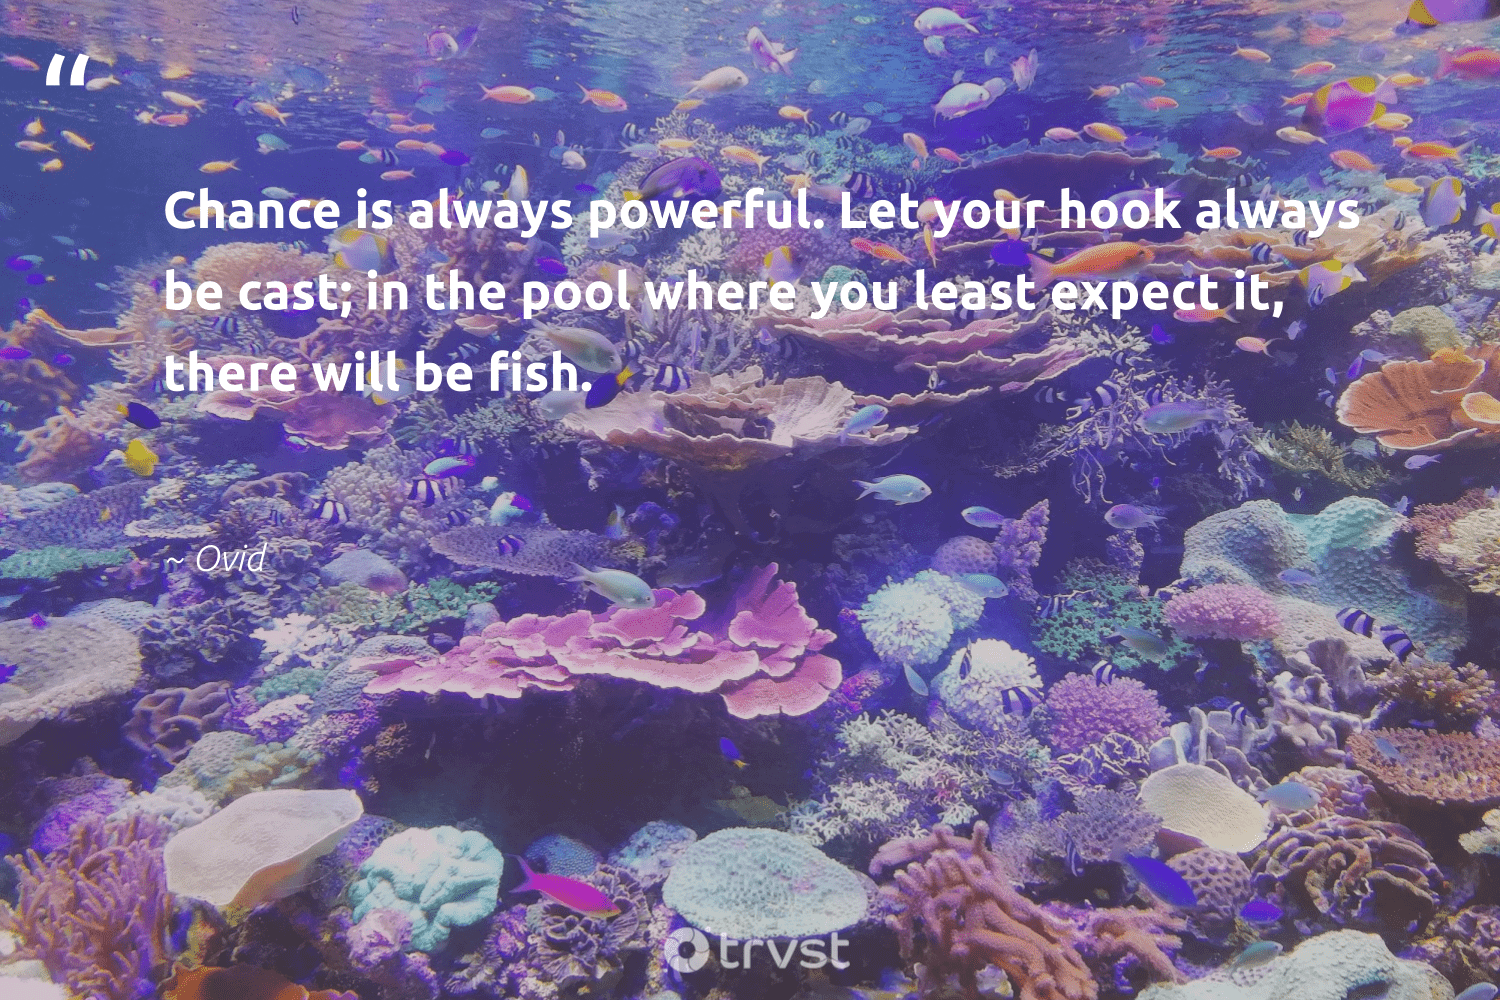 """""""Chance is always powerful. Let your hook always be cast; in the pool where you least expect it, there will be fish.""""  - Ovid #trvst #quotes #fish #conservation #planetearthfirst #biodiversity #bethechange #nature #dotherightthing #sustainablefishing #socialchange #oceanconservation"""